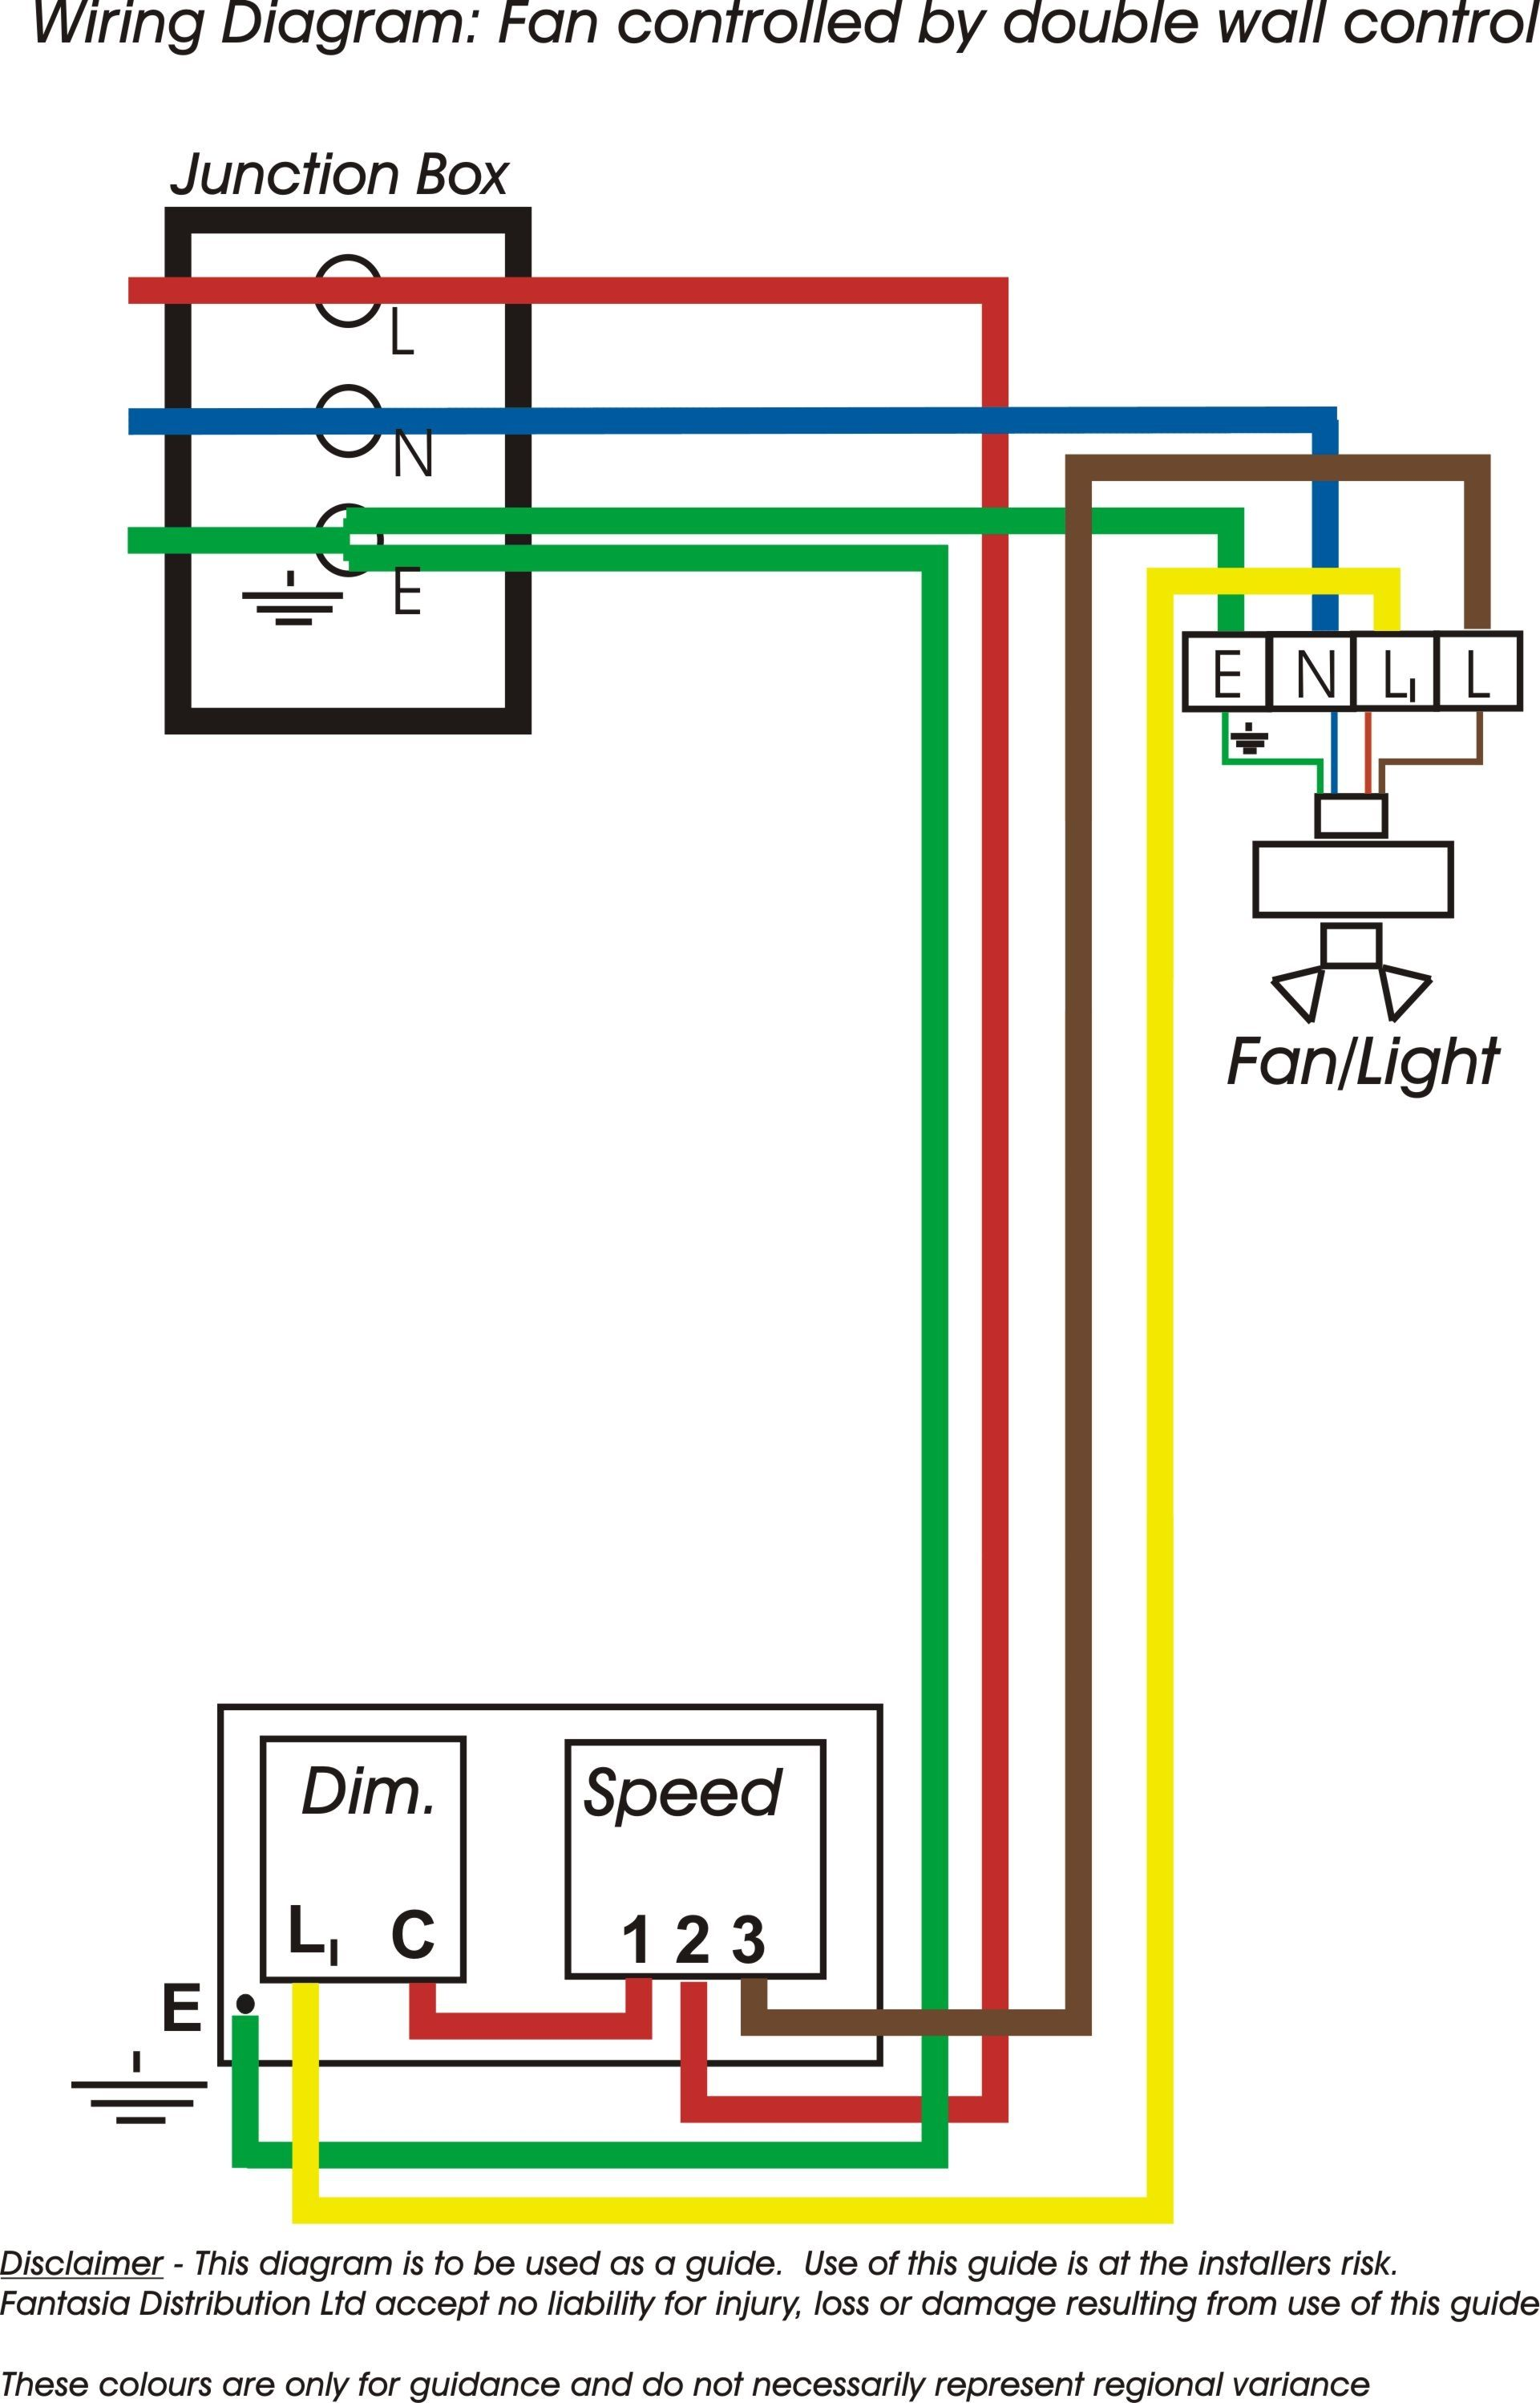 Circuit Diagram Remote Control Ceiling Fan Wiring Library Lcd Tv Schematic Http Wwwseekiccom Circuitdiagram Hunter Fans With